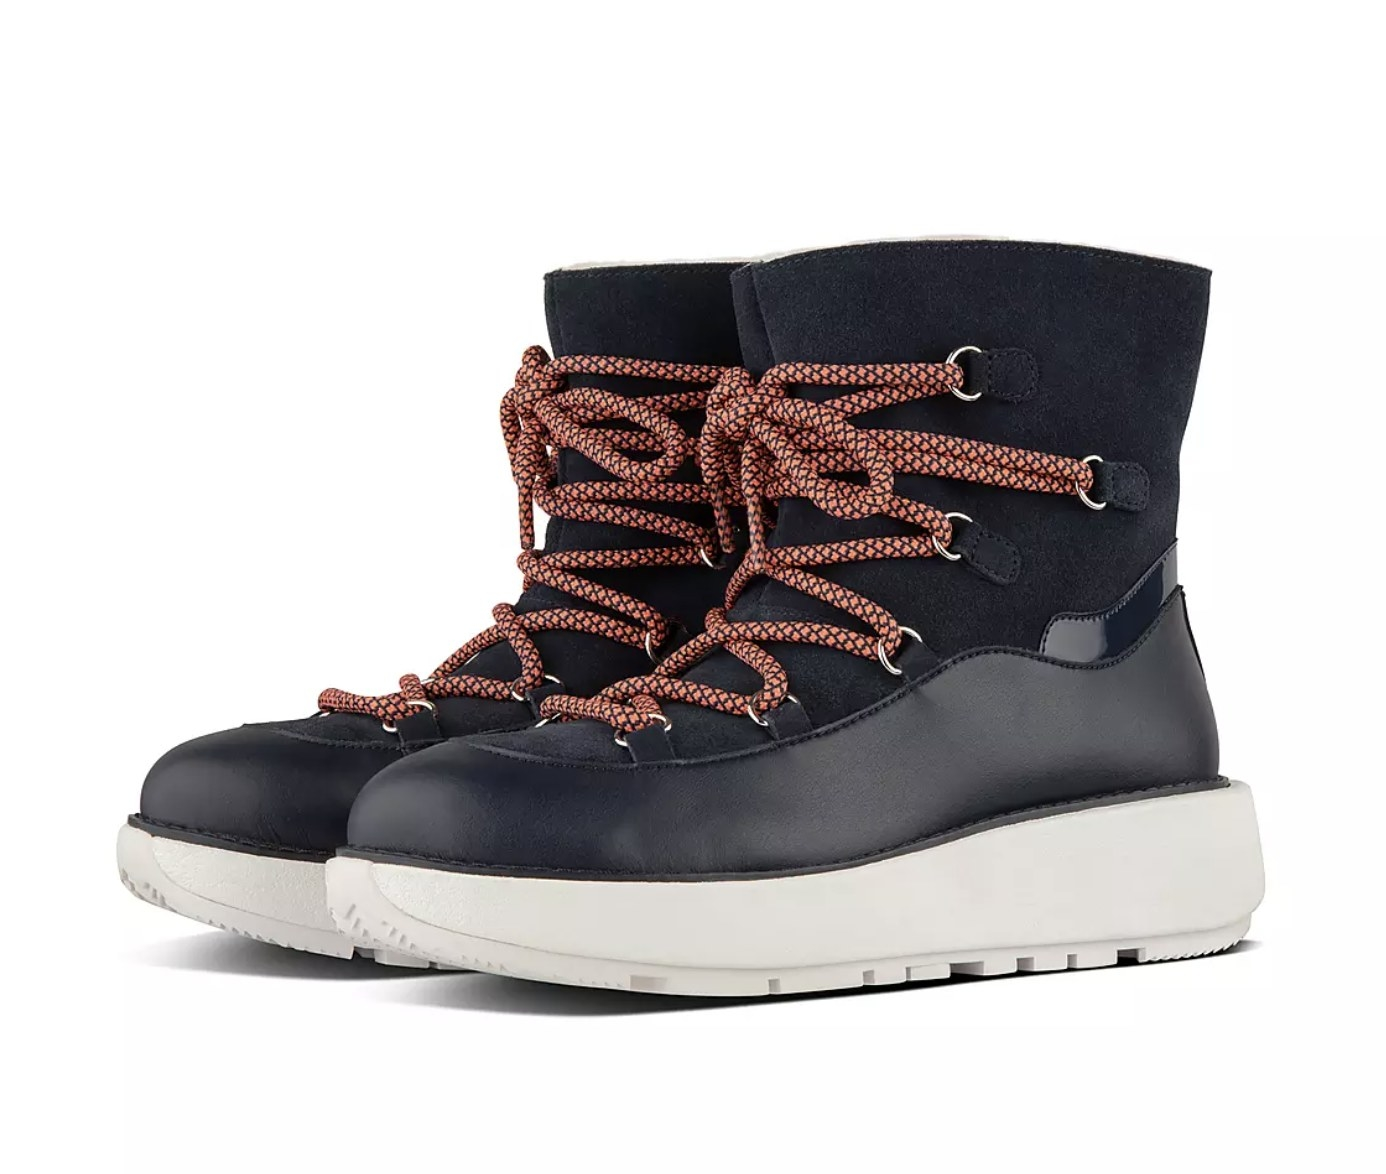 the boots in navy with orange laces